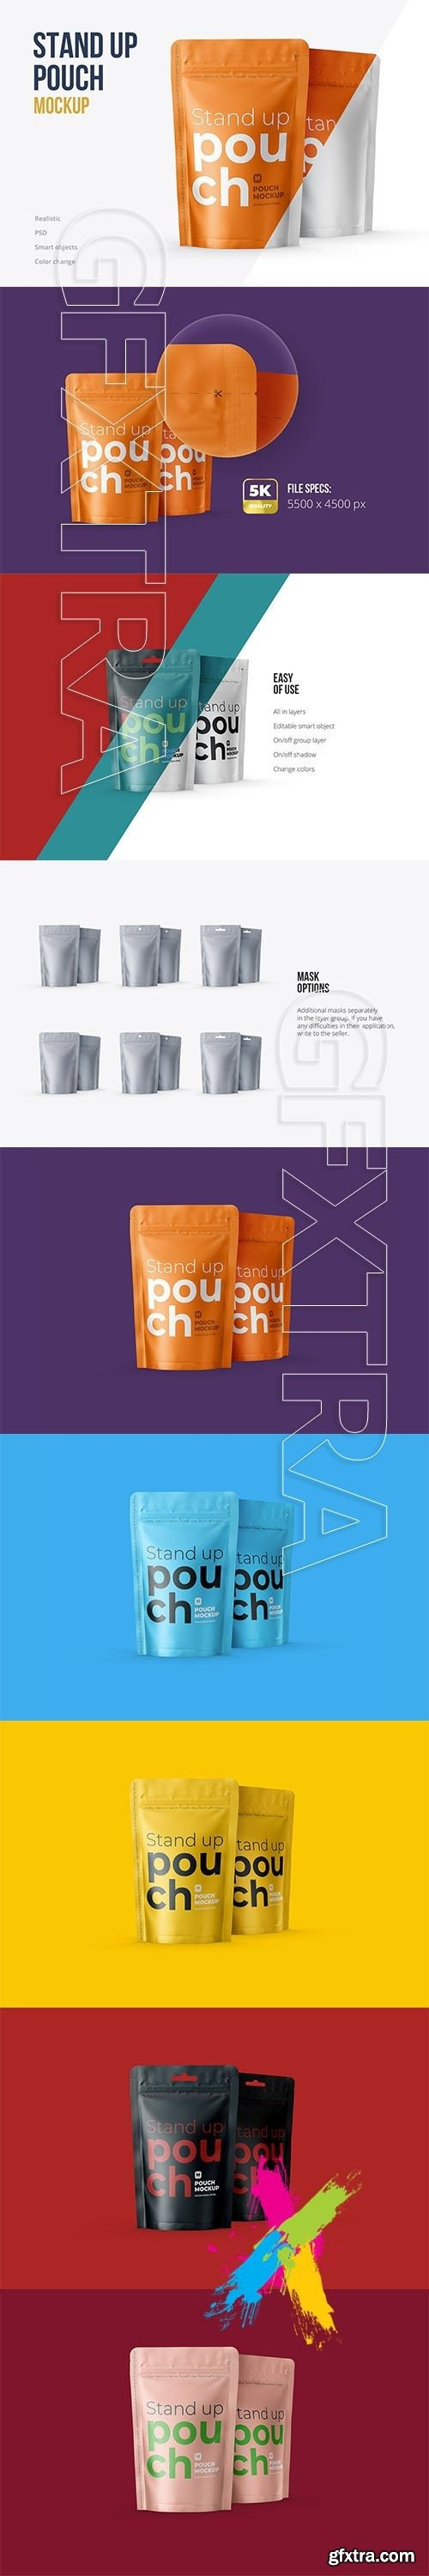 CreativeMarket - Stand Up Pouch Front and Half Side 5161150